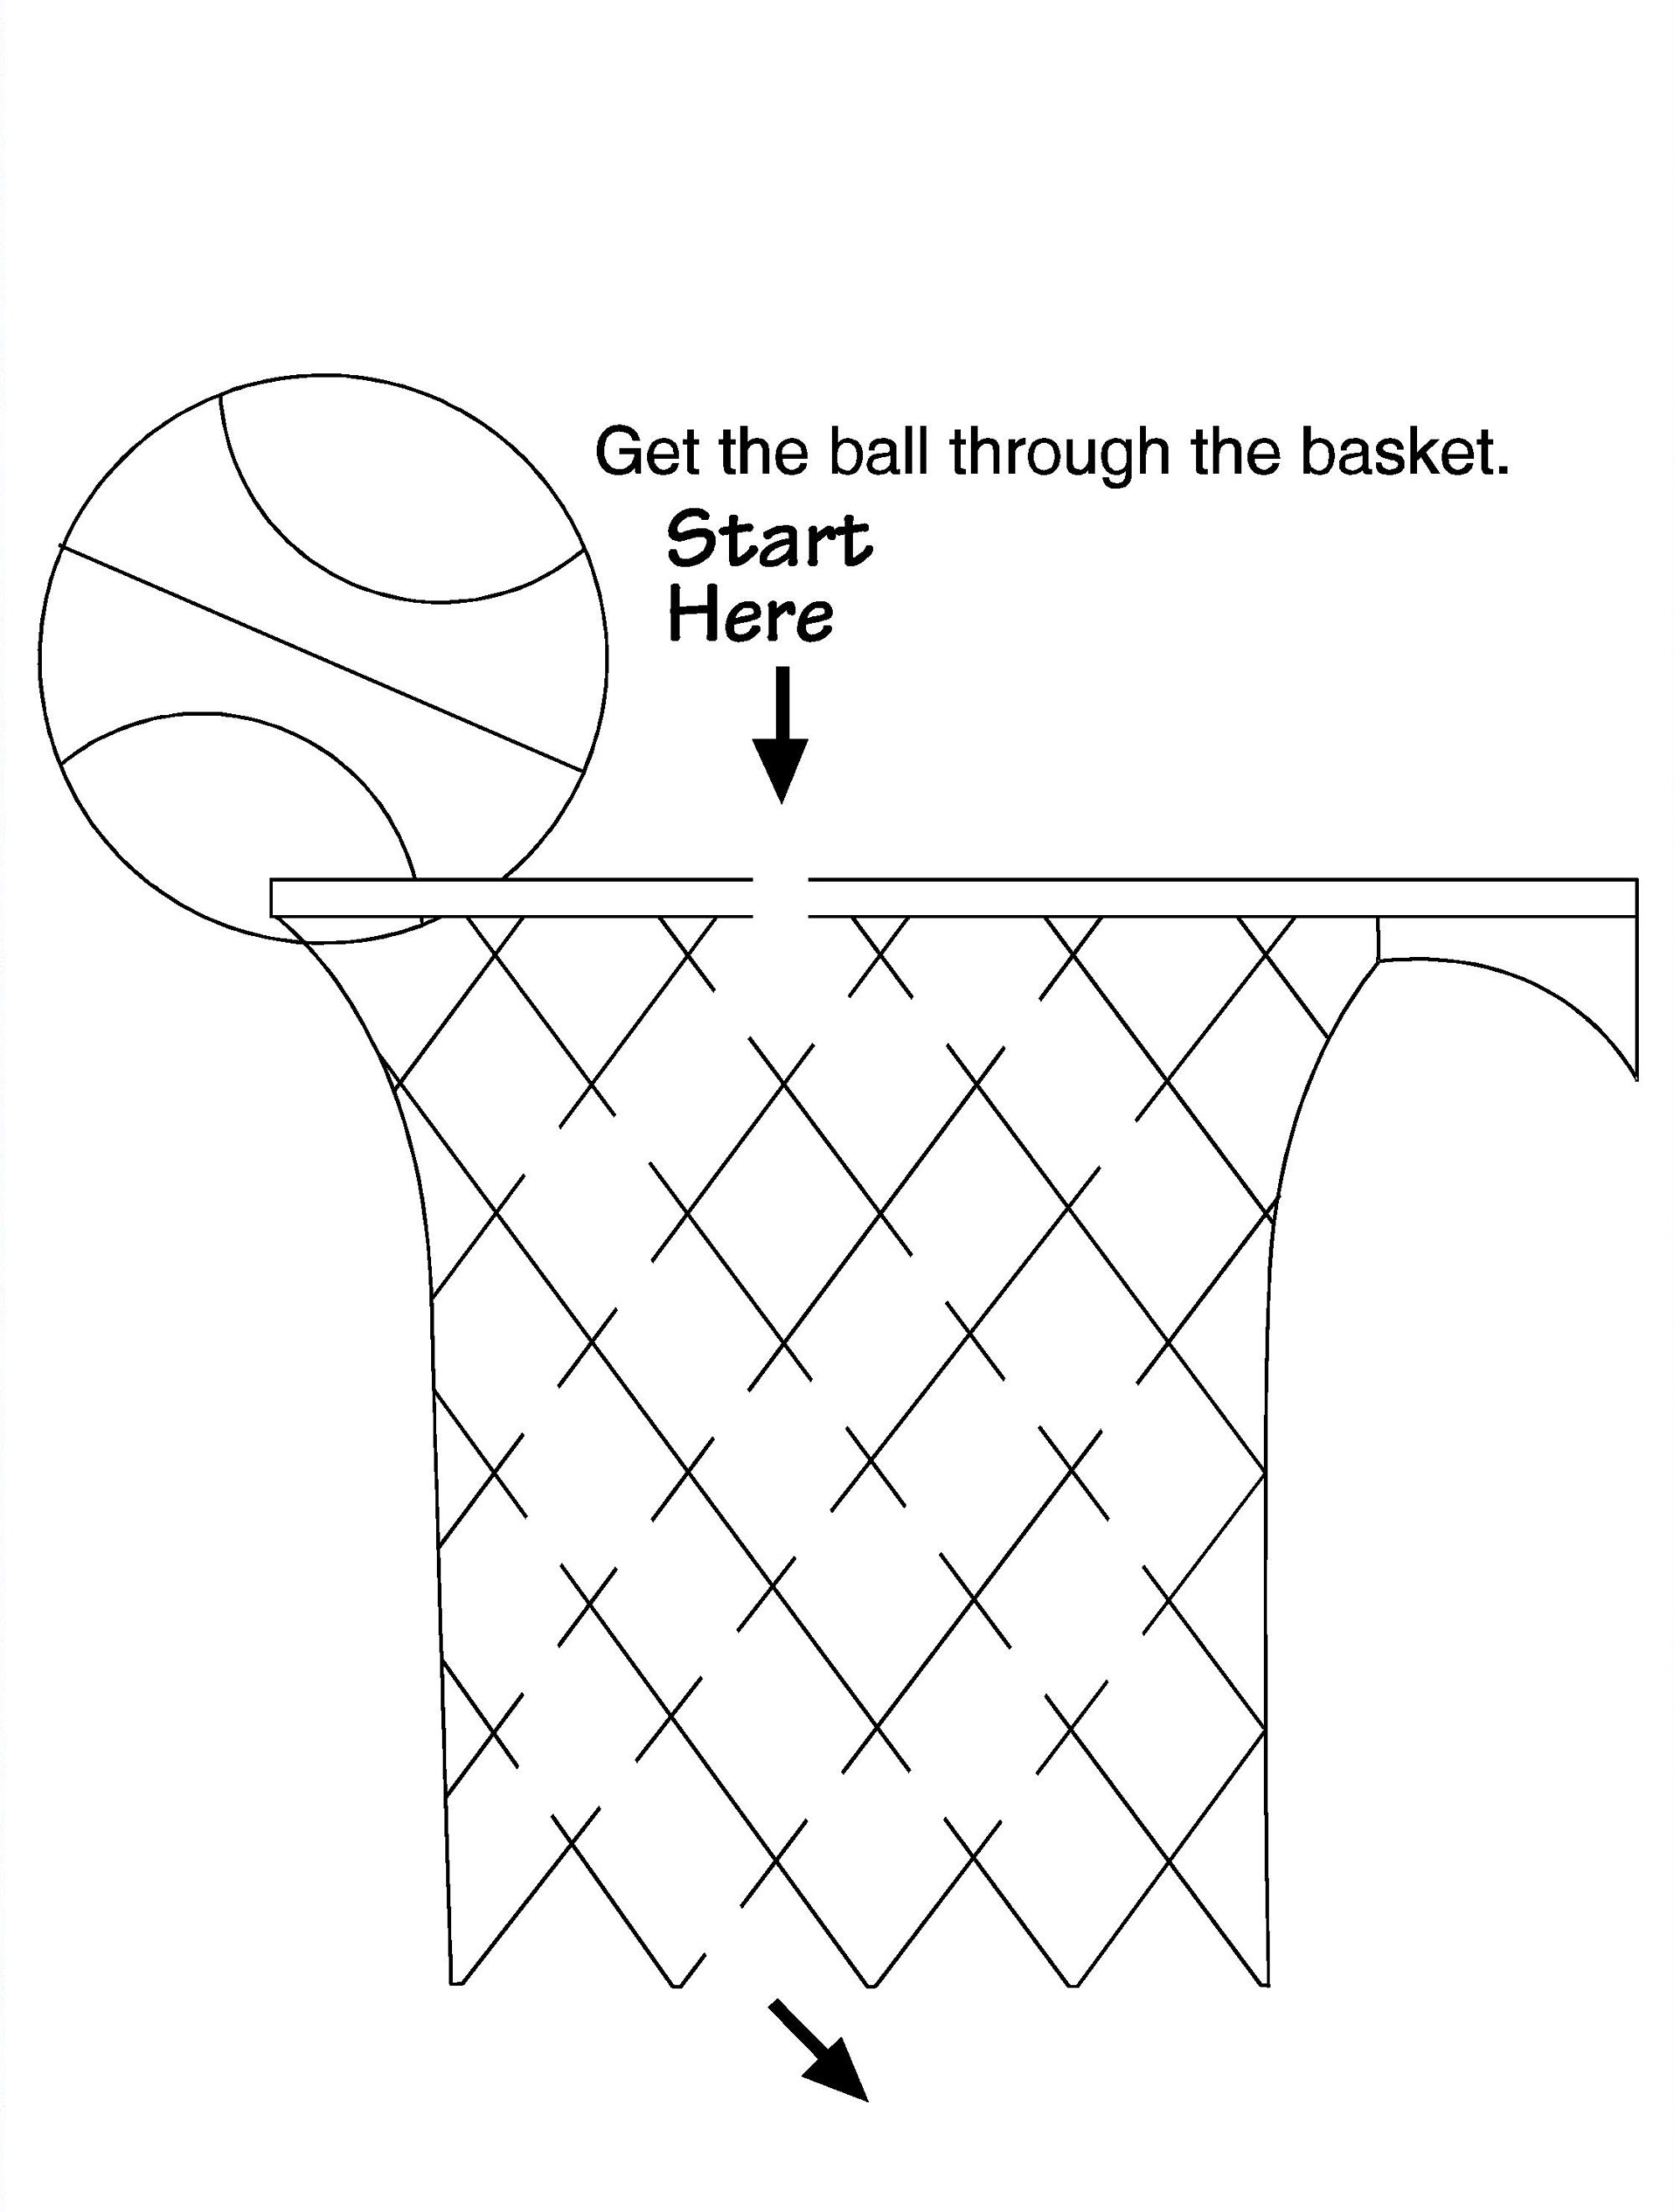 Basketball Activities Worksheet For Kids Kids Worksheets Printables Worksheets For Kids Online Kindergarten Math Games